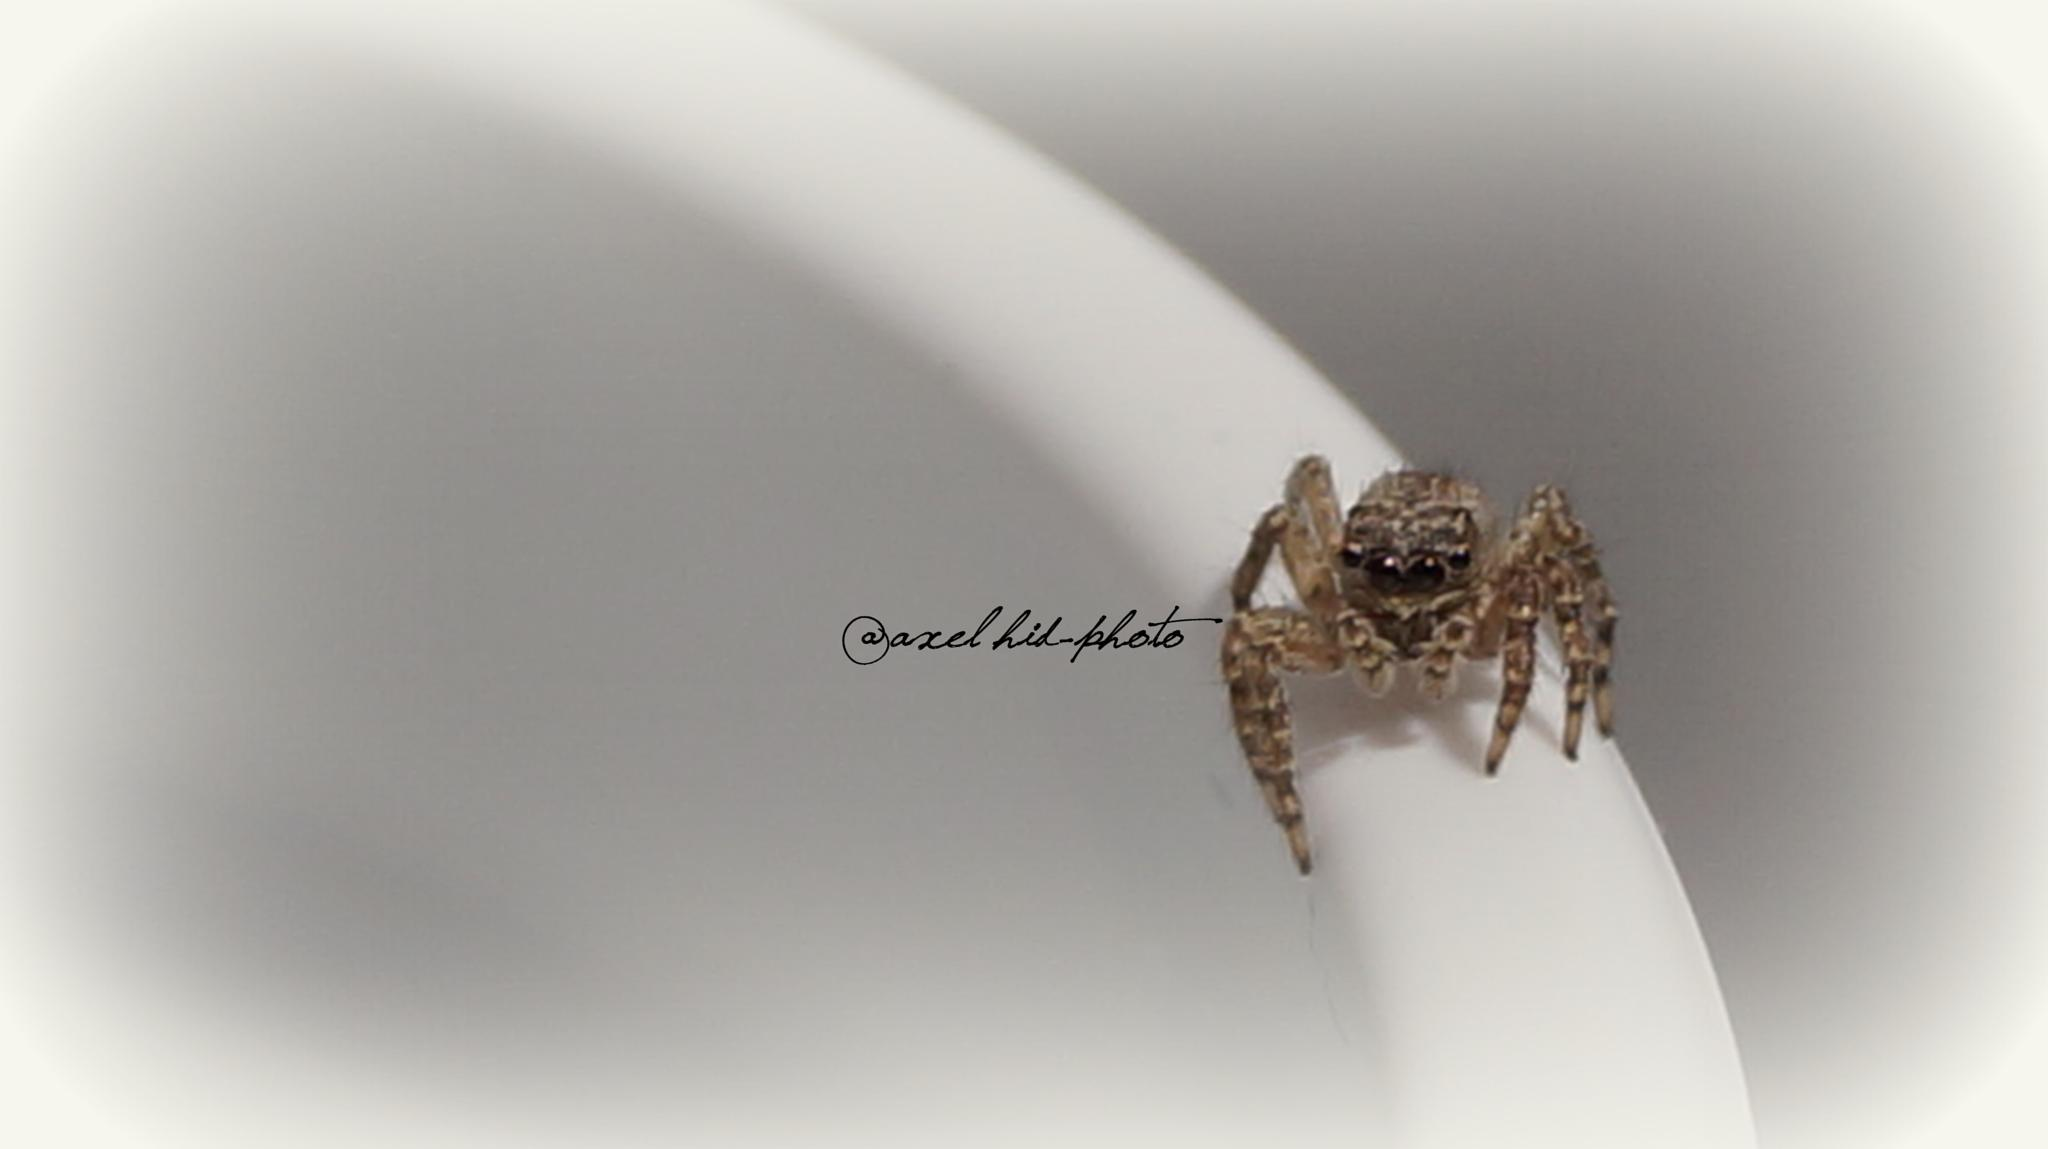 Salticidae by @axel hid-photo